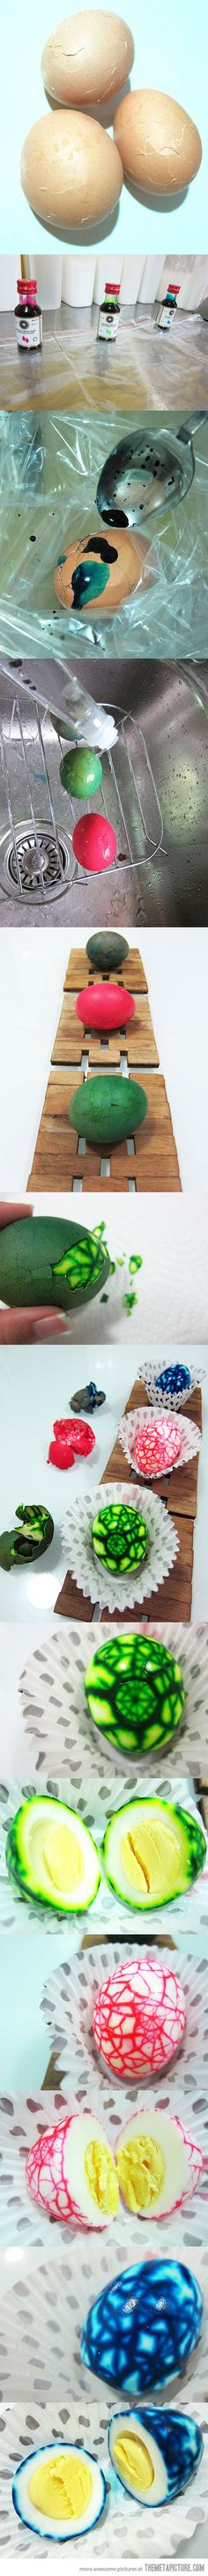 Marbled Easter Eggs! Make these into deviled eggs...